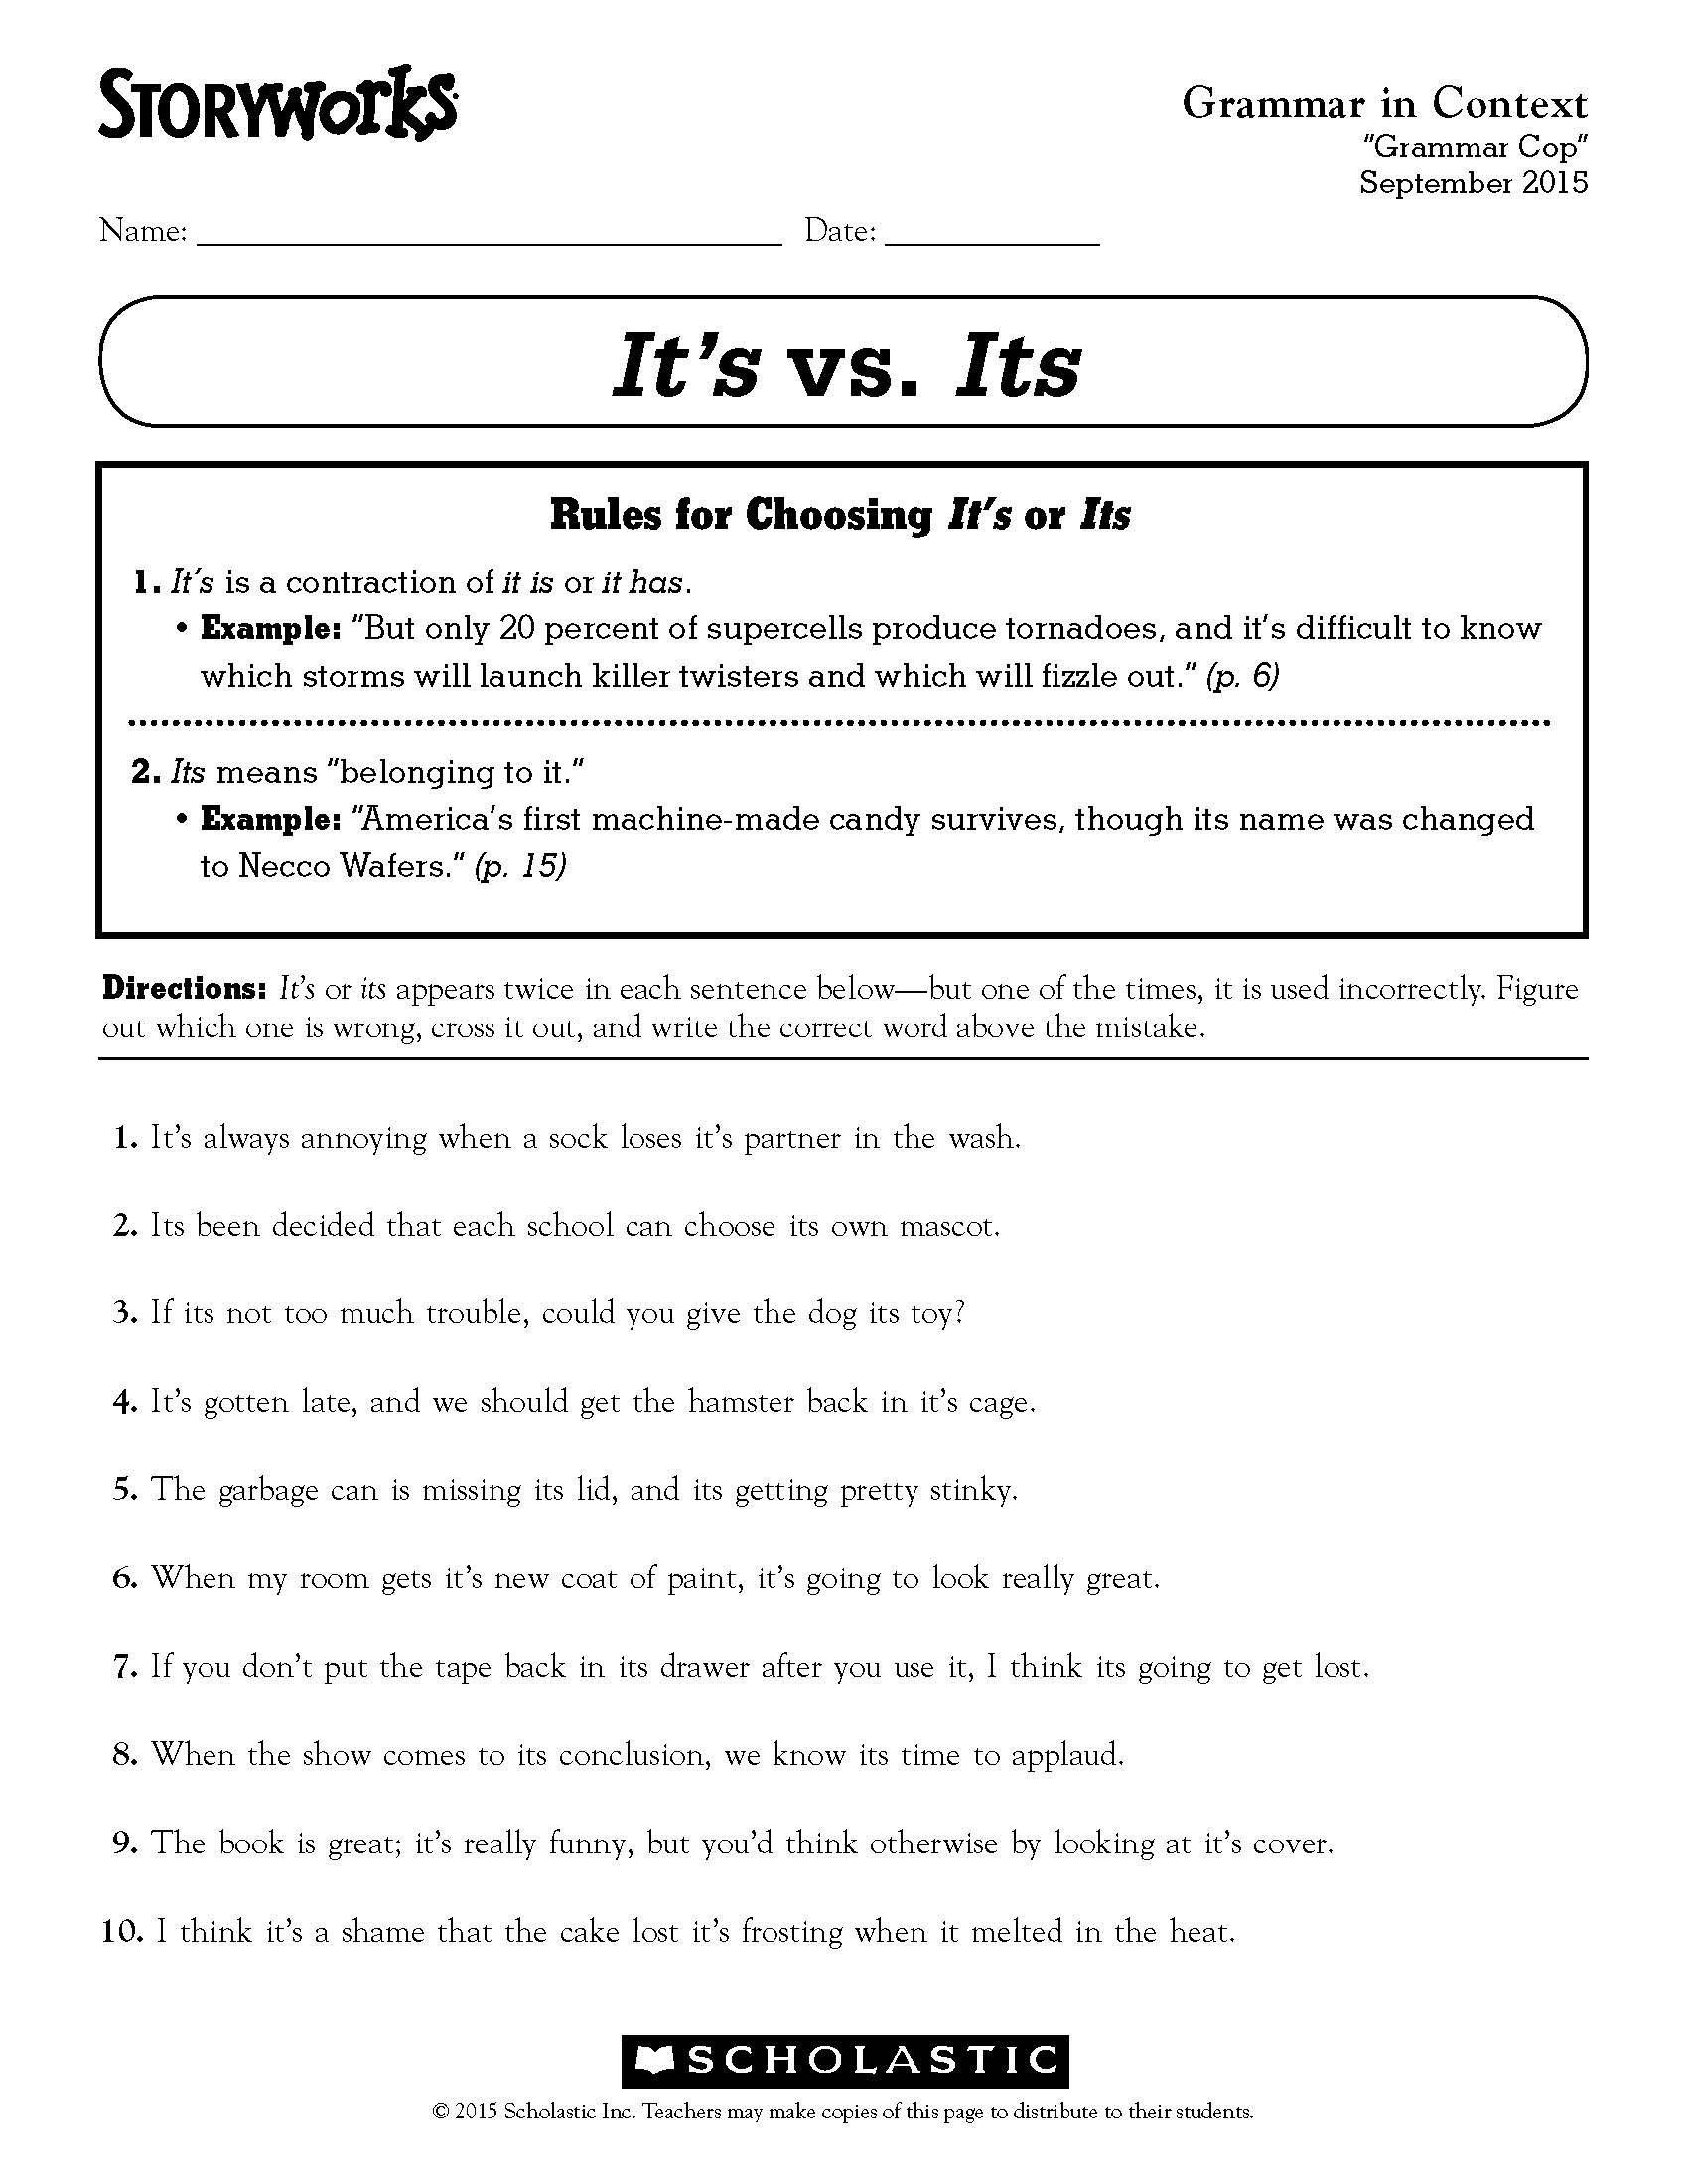 Third Grade Grammar Worksheet Grammar Grammar Worksheets Fourth Grade Writing Grammar Practice